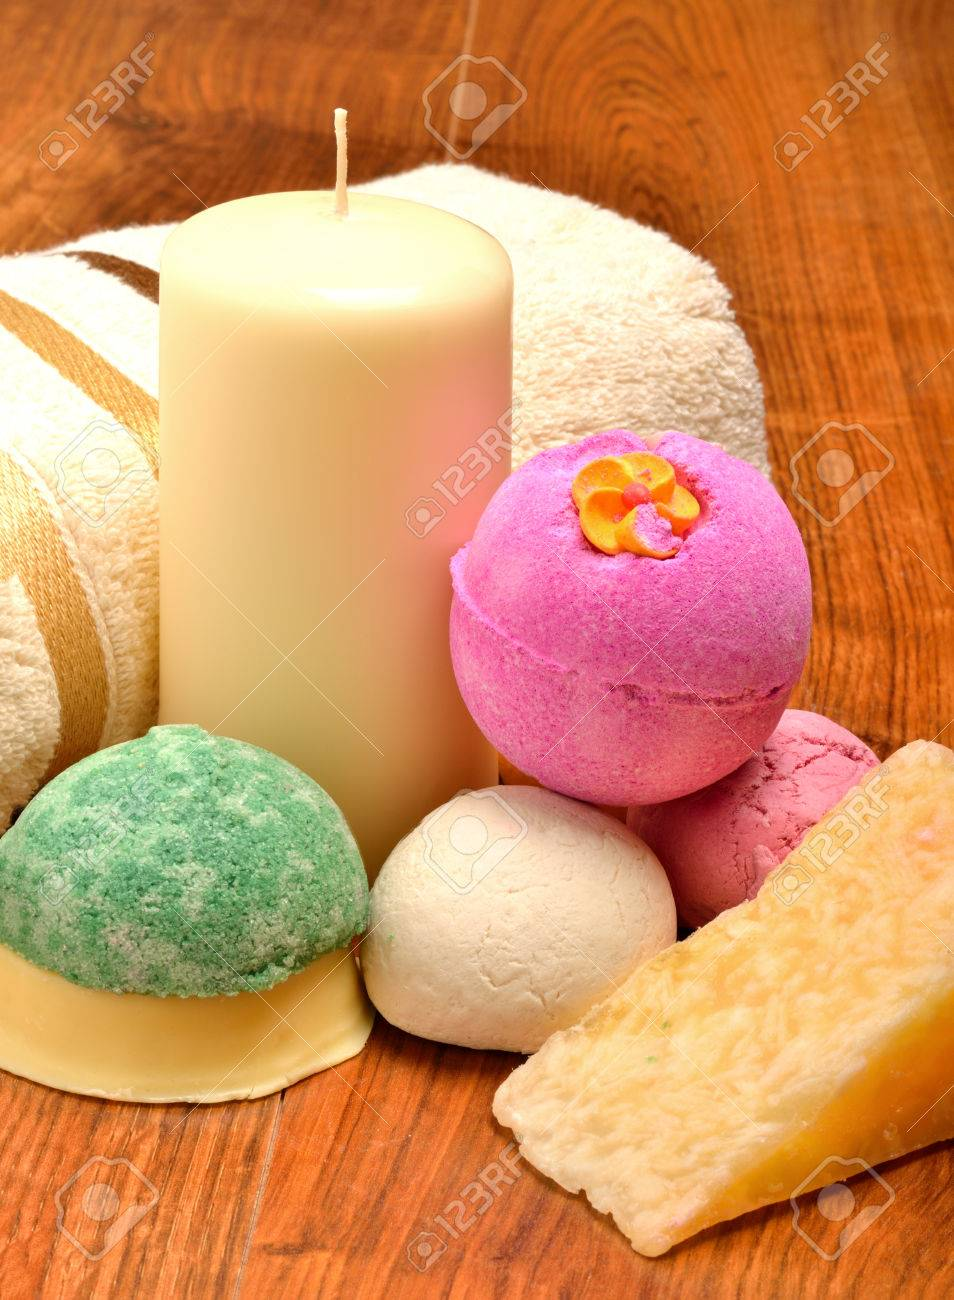 Candle, soap, bath bombs and bath towel on the wooden background - 26819238